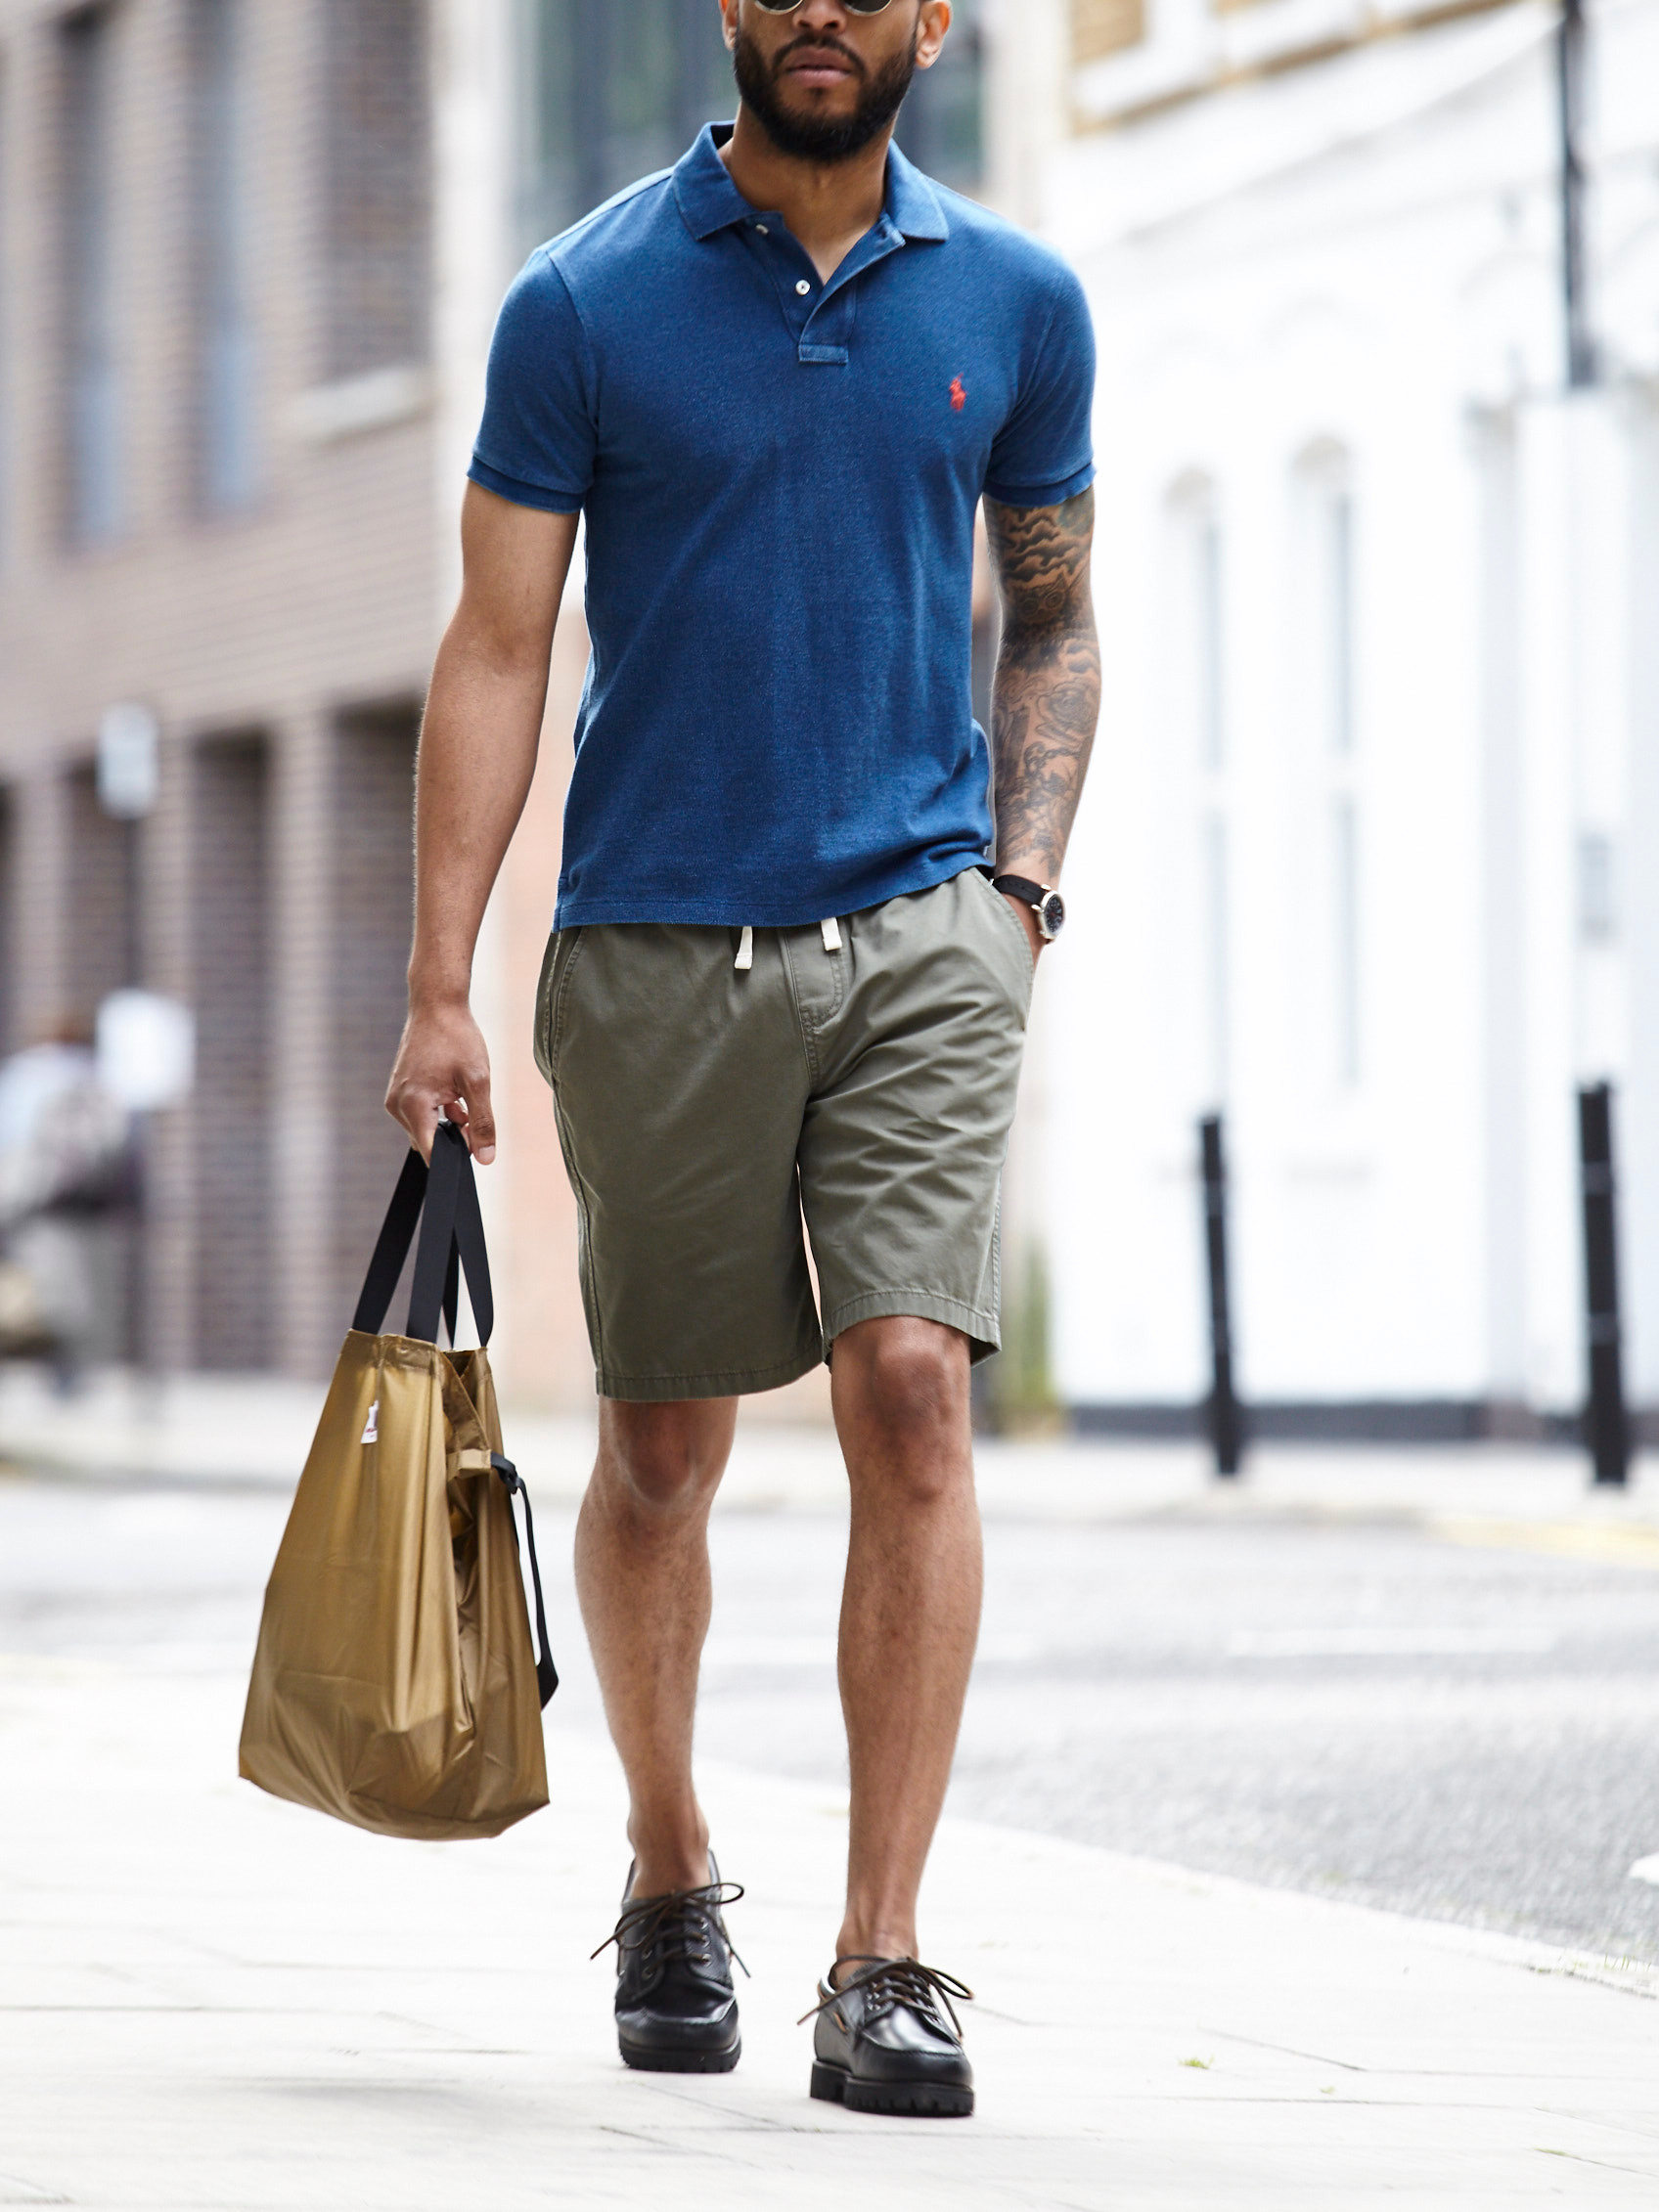 Men's outfit idea for 2021 with navy polo, khaki shorts, tote bag, boat shoes. Suitable for summer.